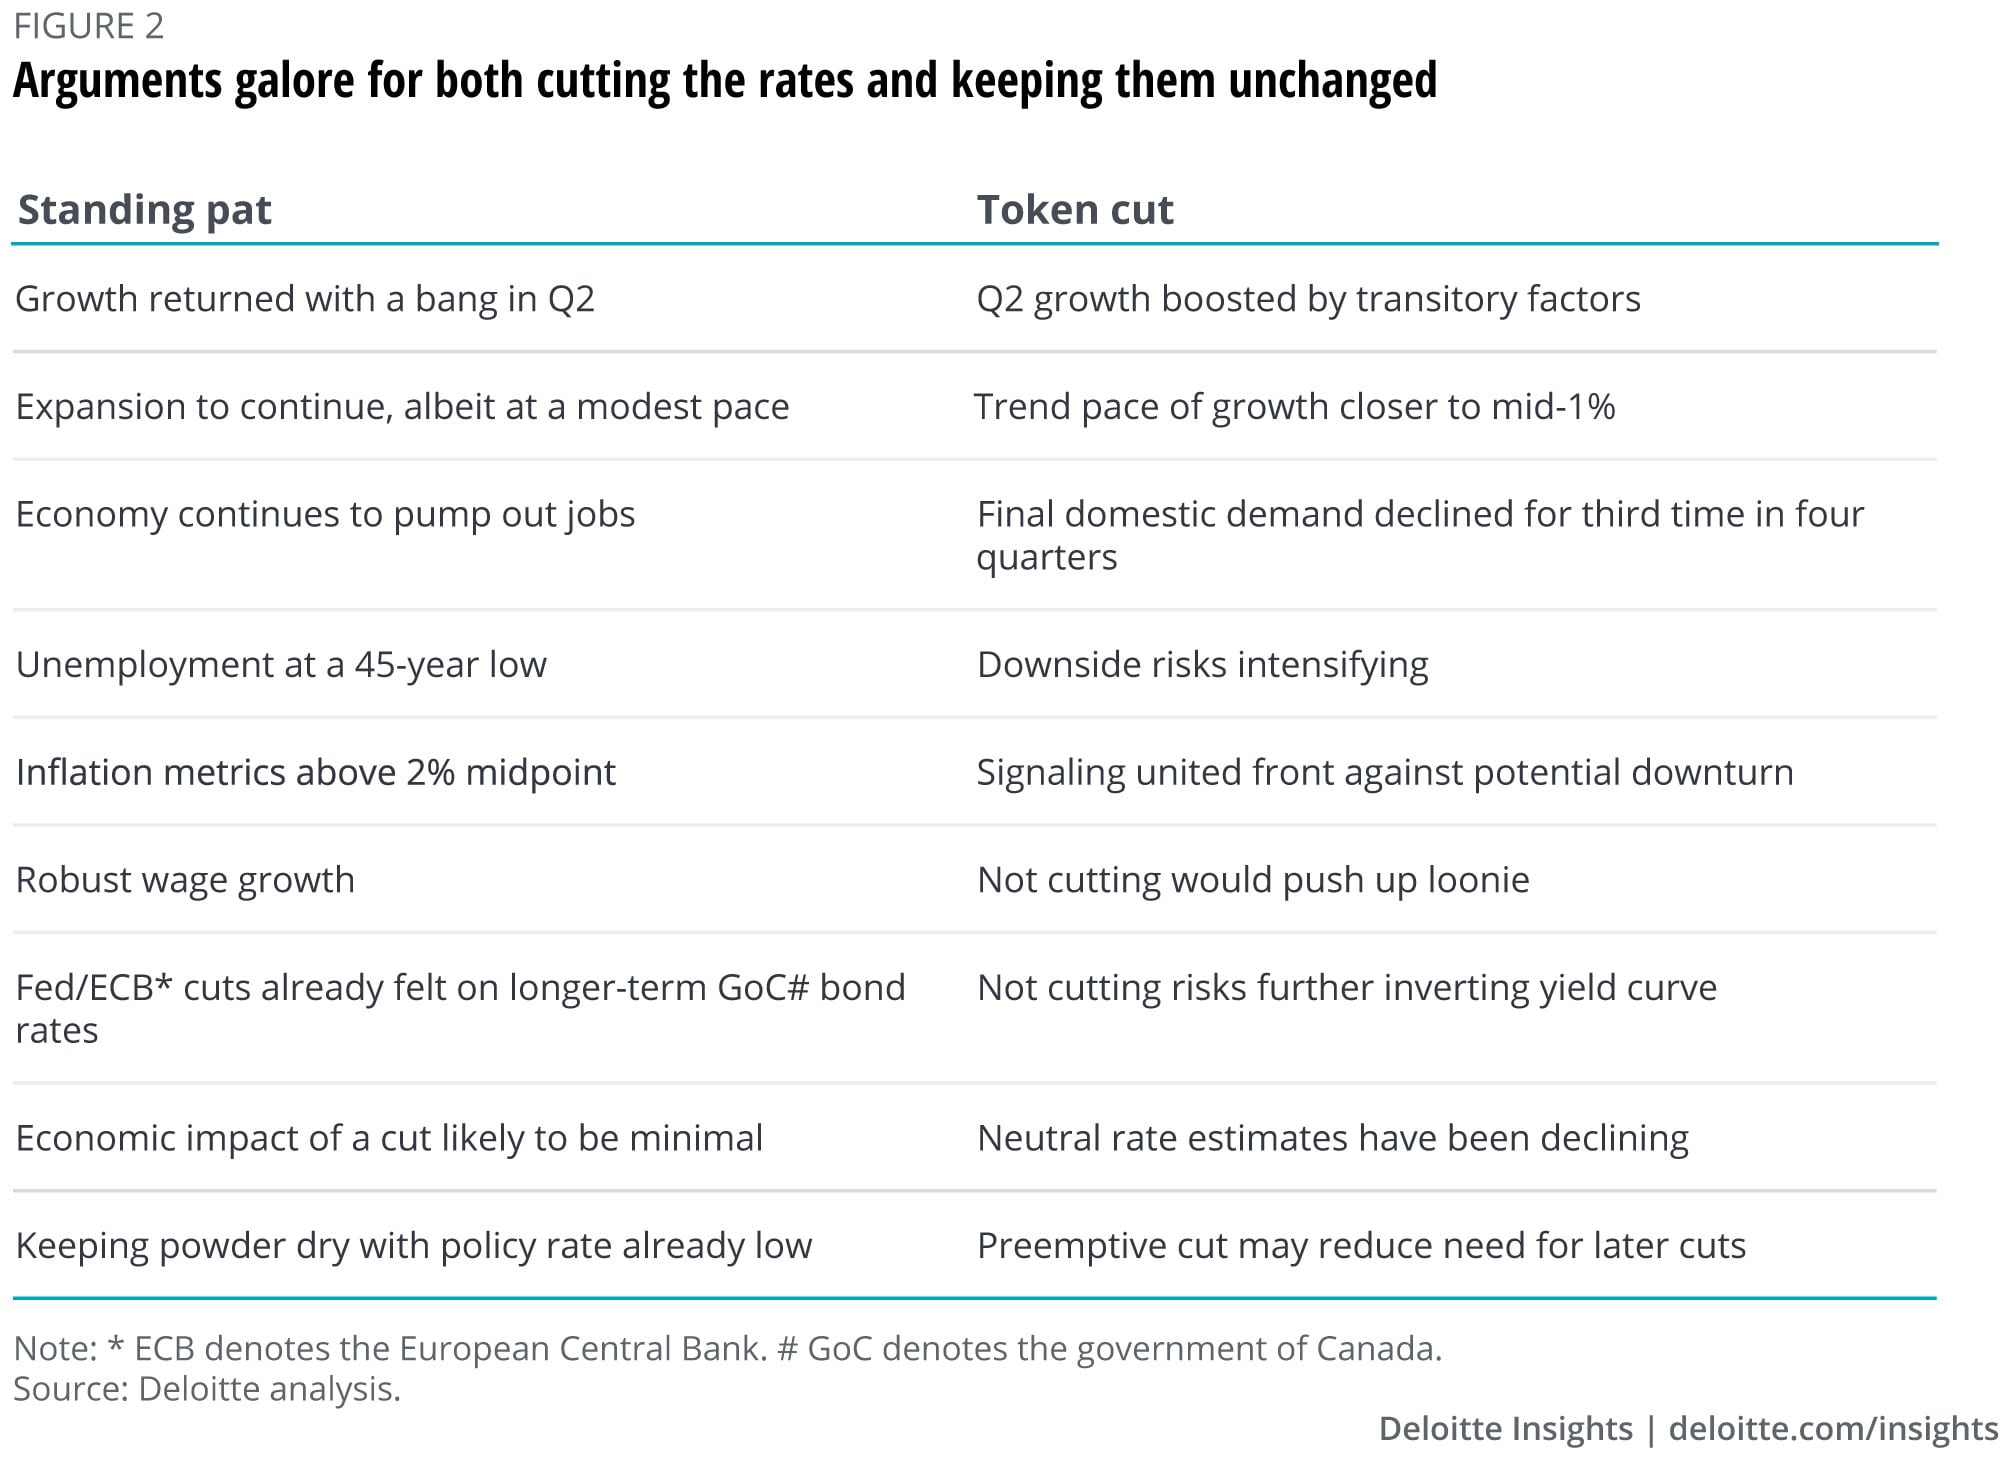 Arguments galore for both cutting the rates and keeping them unchanged